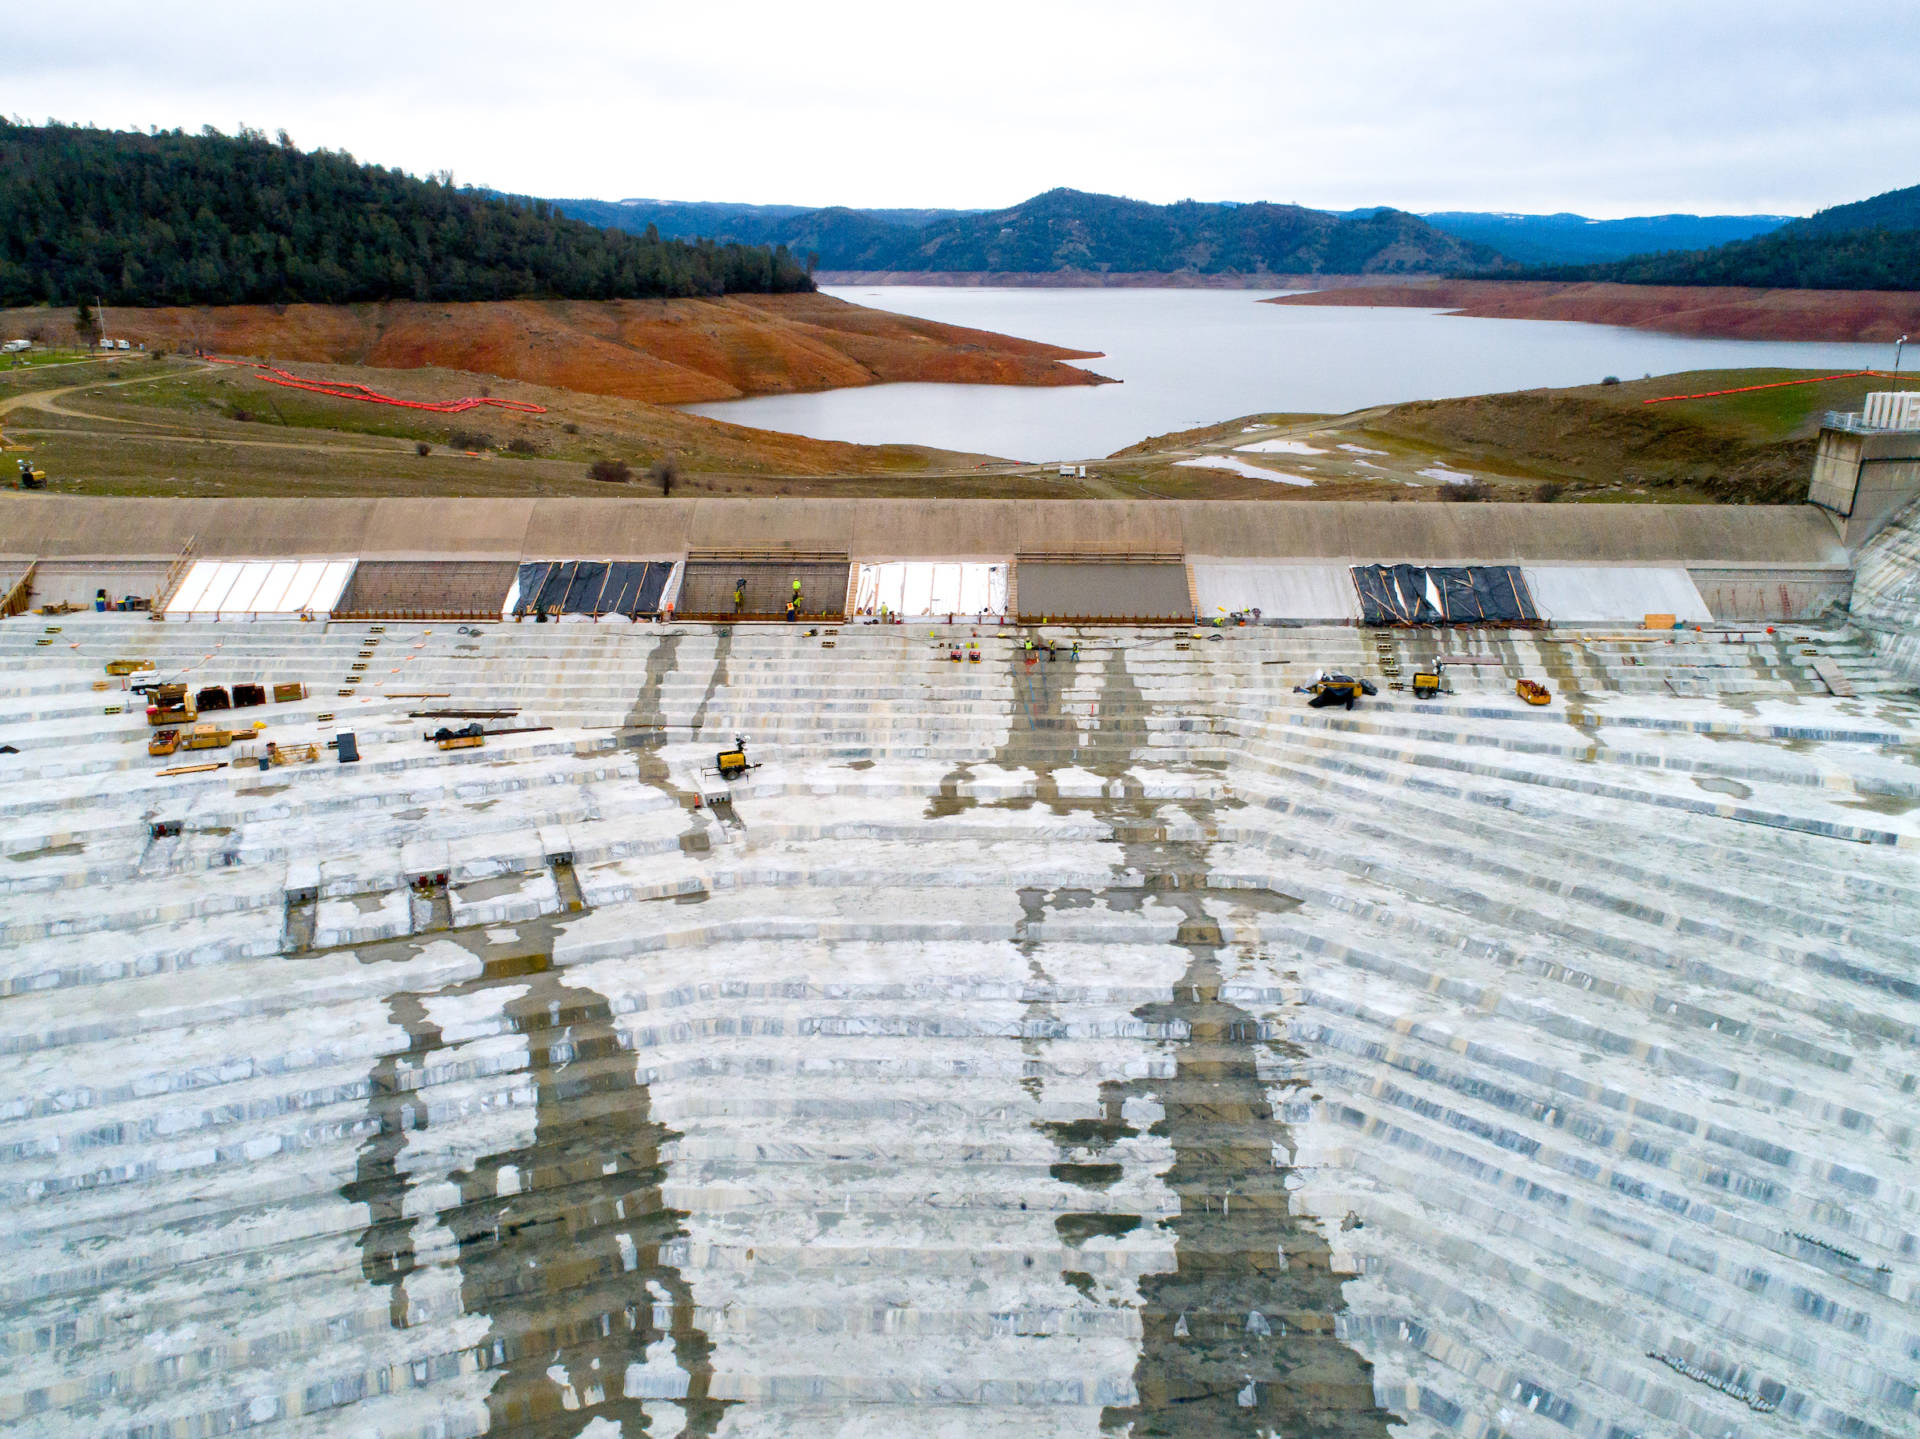 A drone provides a view of Lake Oroville and the emergency spillway splashpad as crews continue to work on the new concrete cap over the roller-compacted concrete buttress below the spillway weir. Kelly M. Grow/California Department of Water Resources